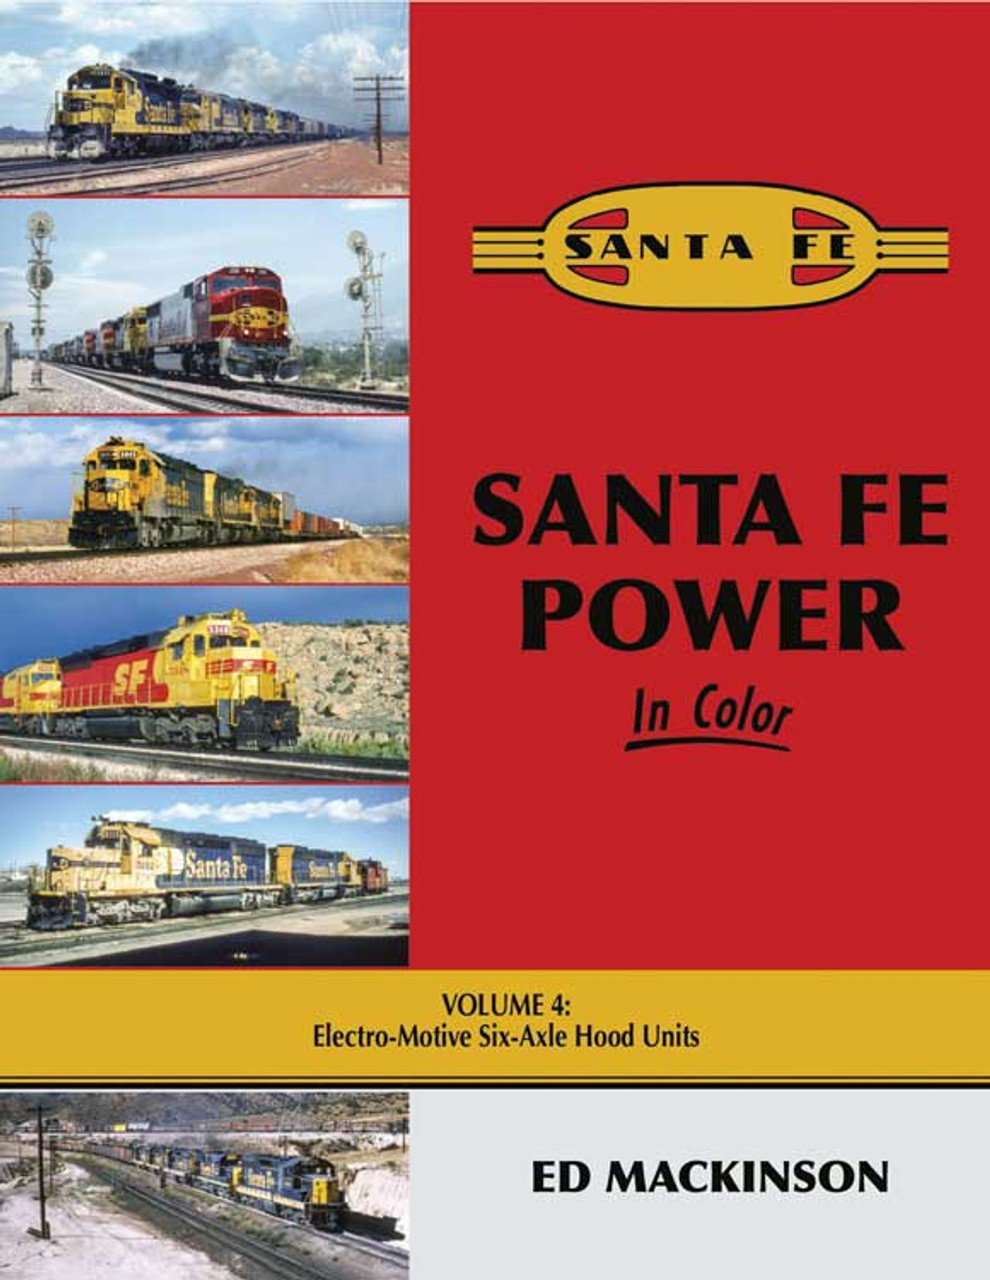 Santa Fe Power in Color -- Volume 4: Electro-Motive Six-Axle Hood Units, Hardcover, 128 Pages